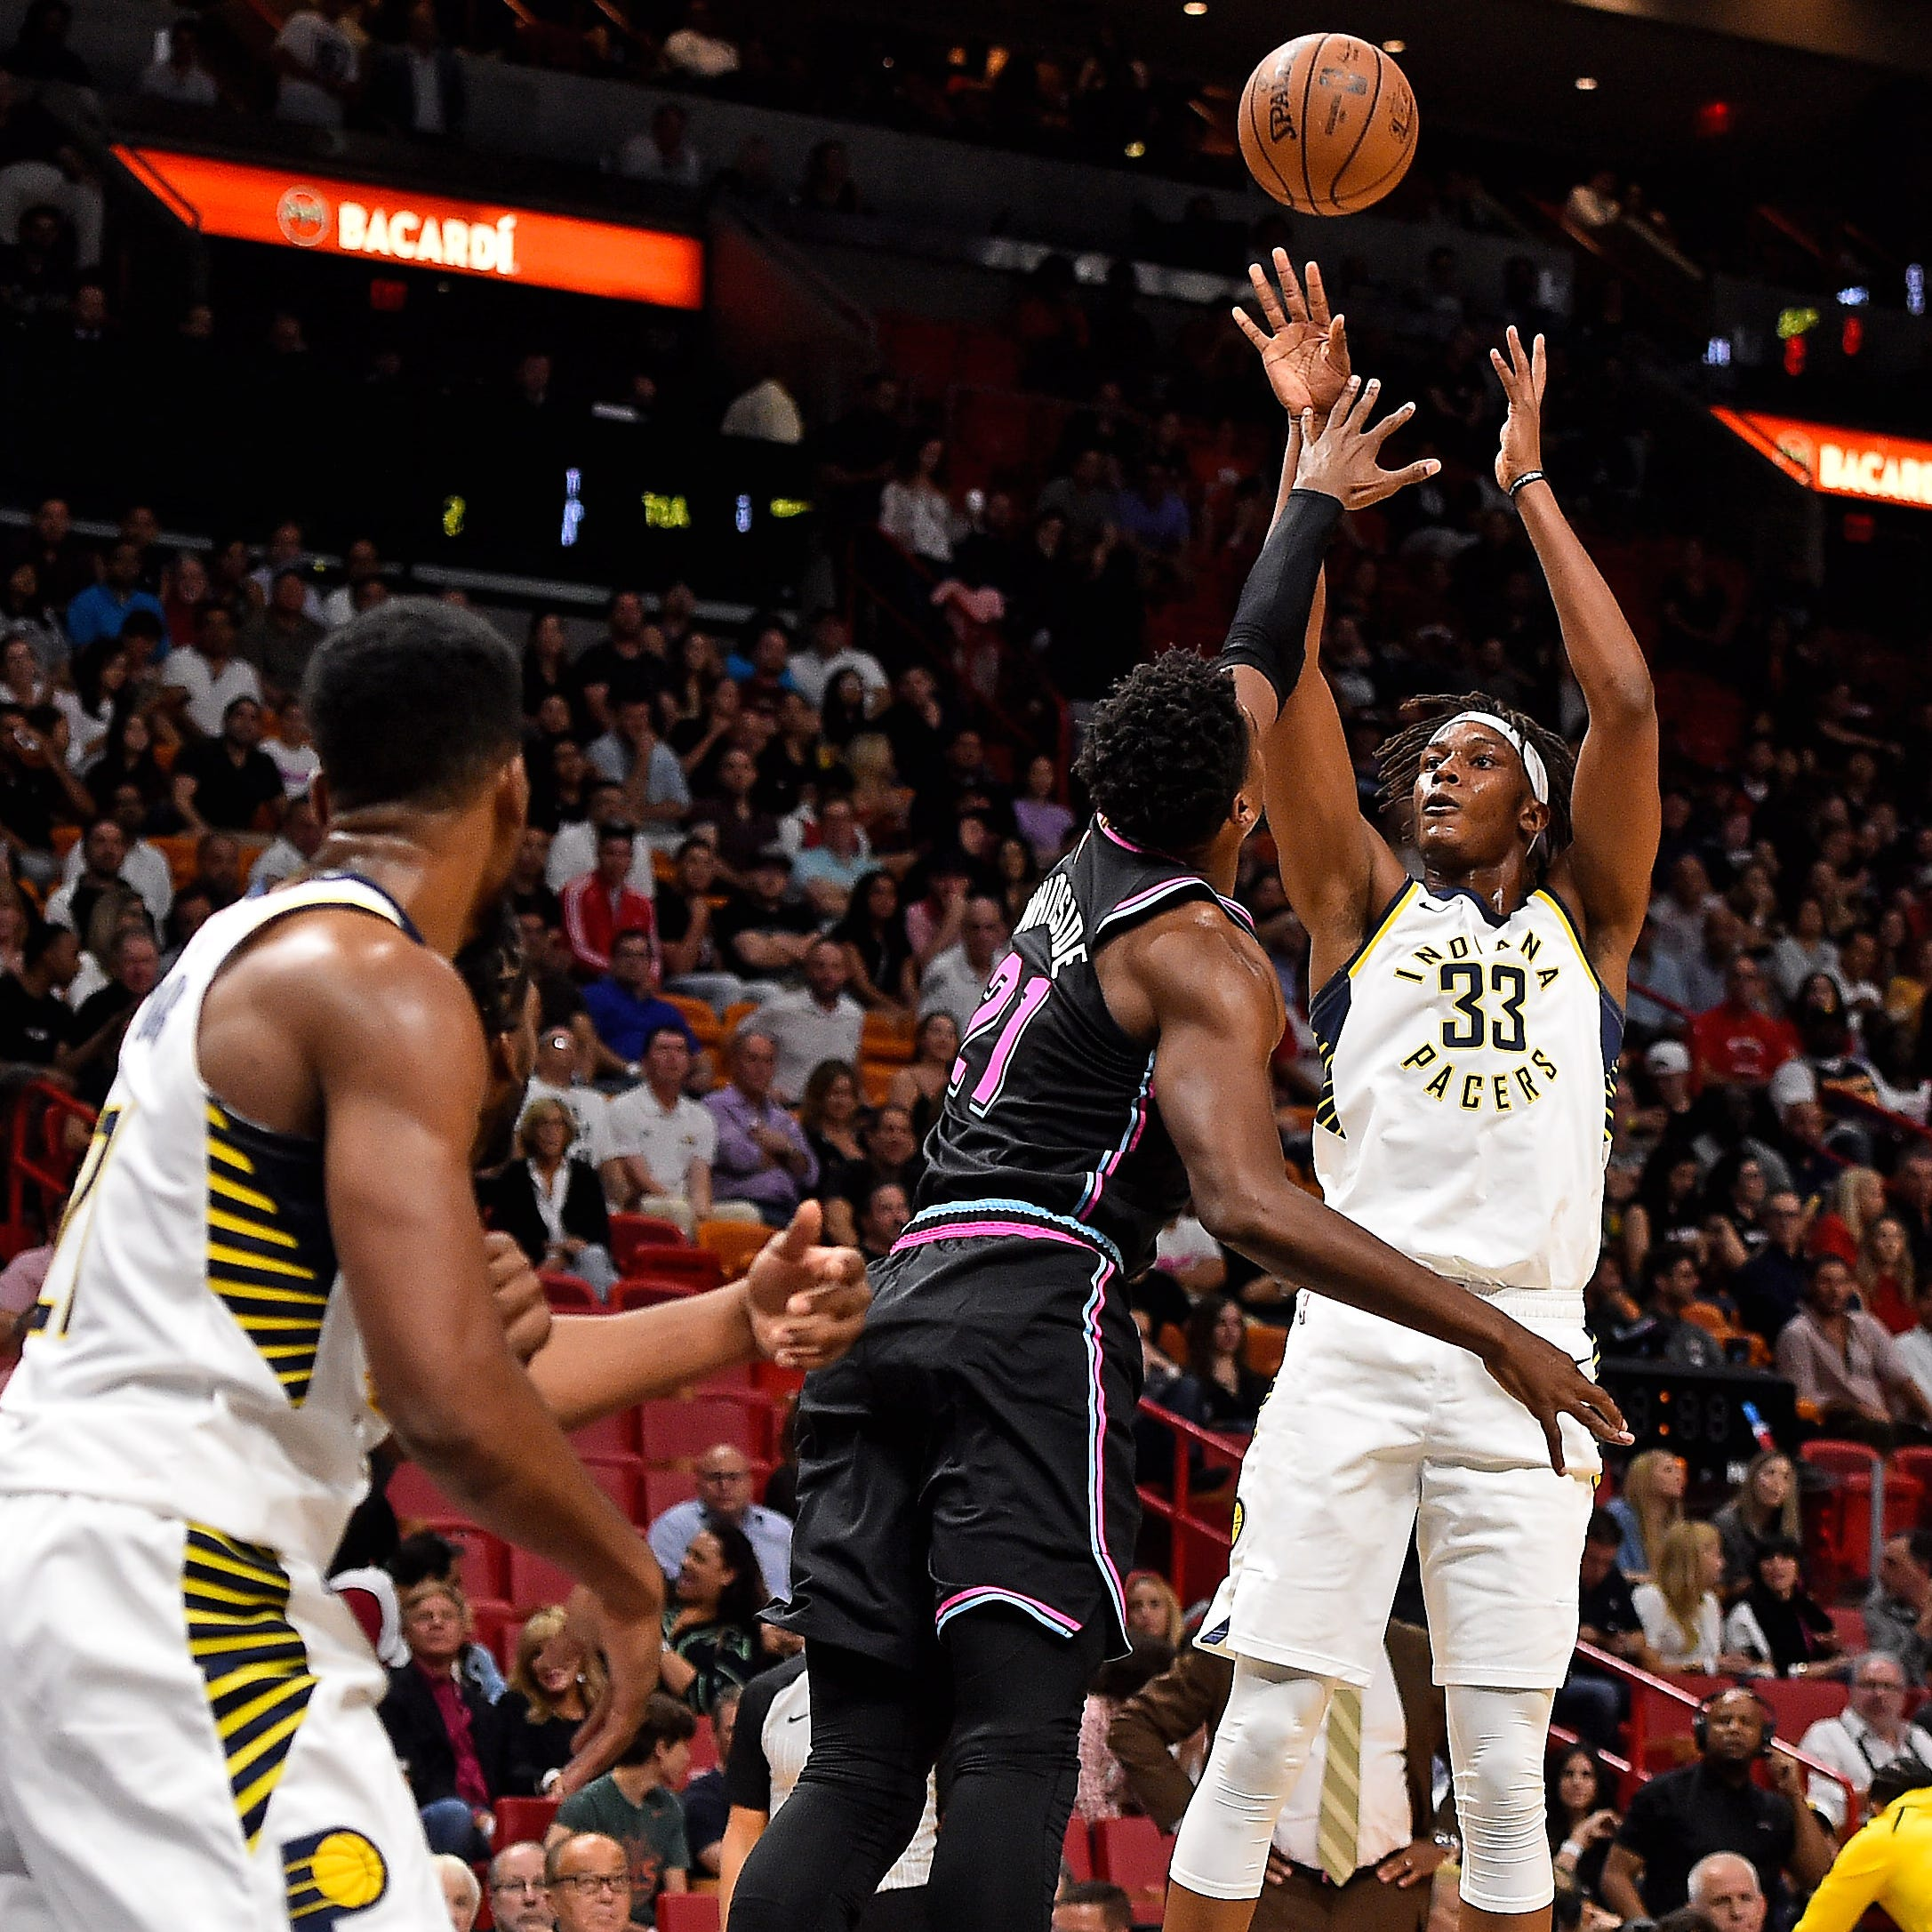 While Pacers fans want more, Myles Turner says 'I'm going to be better.'